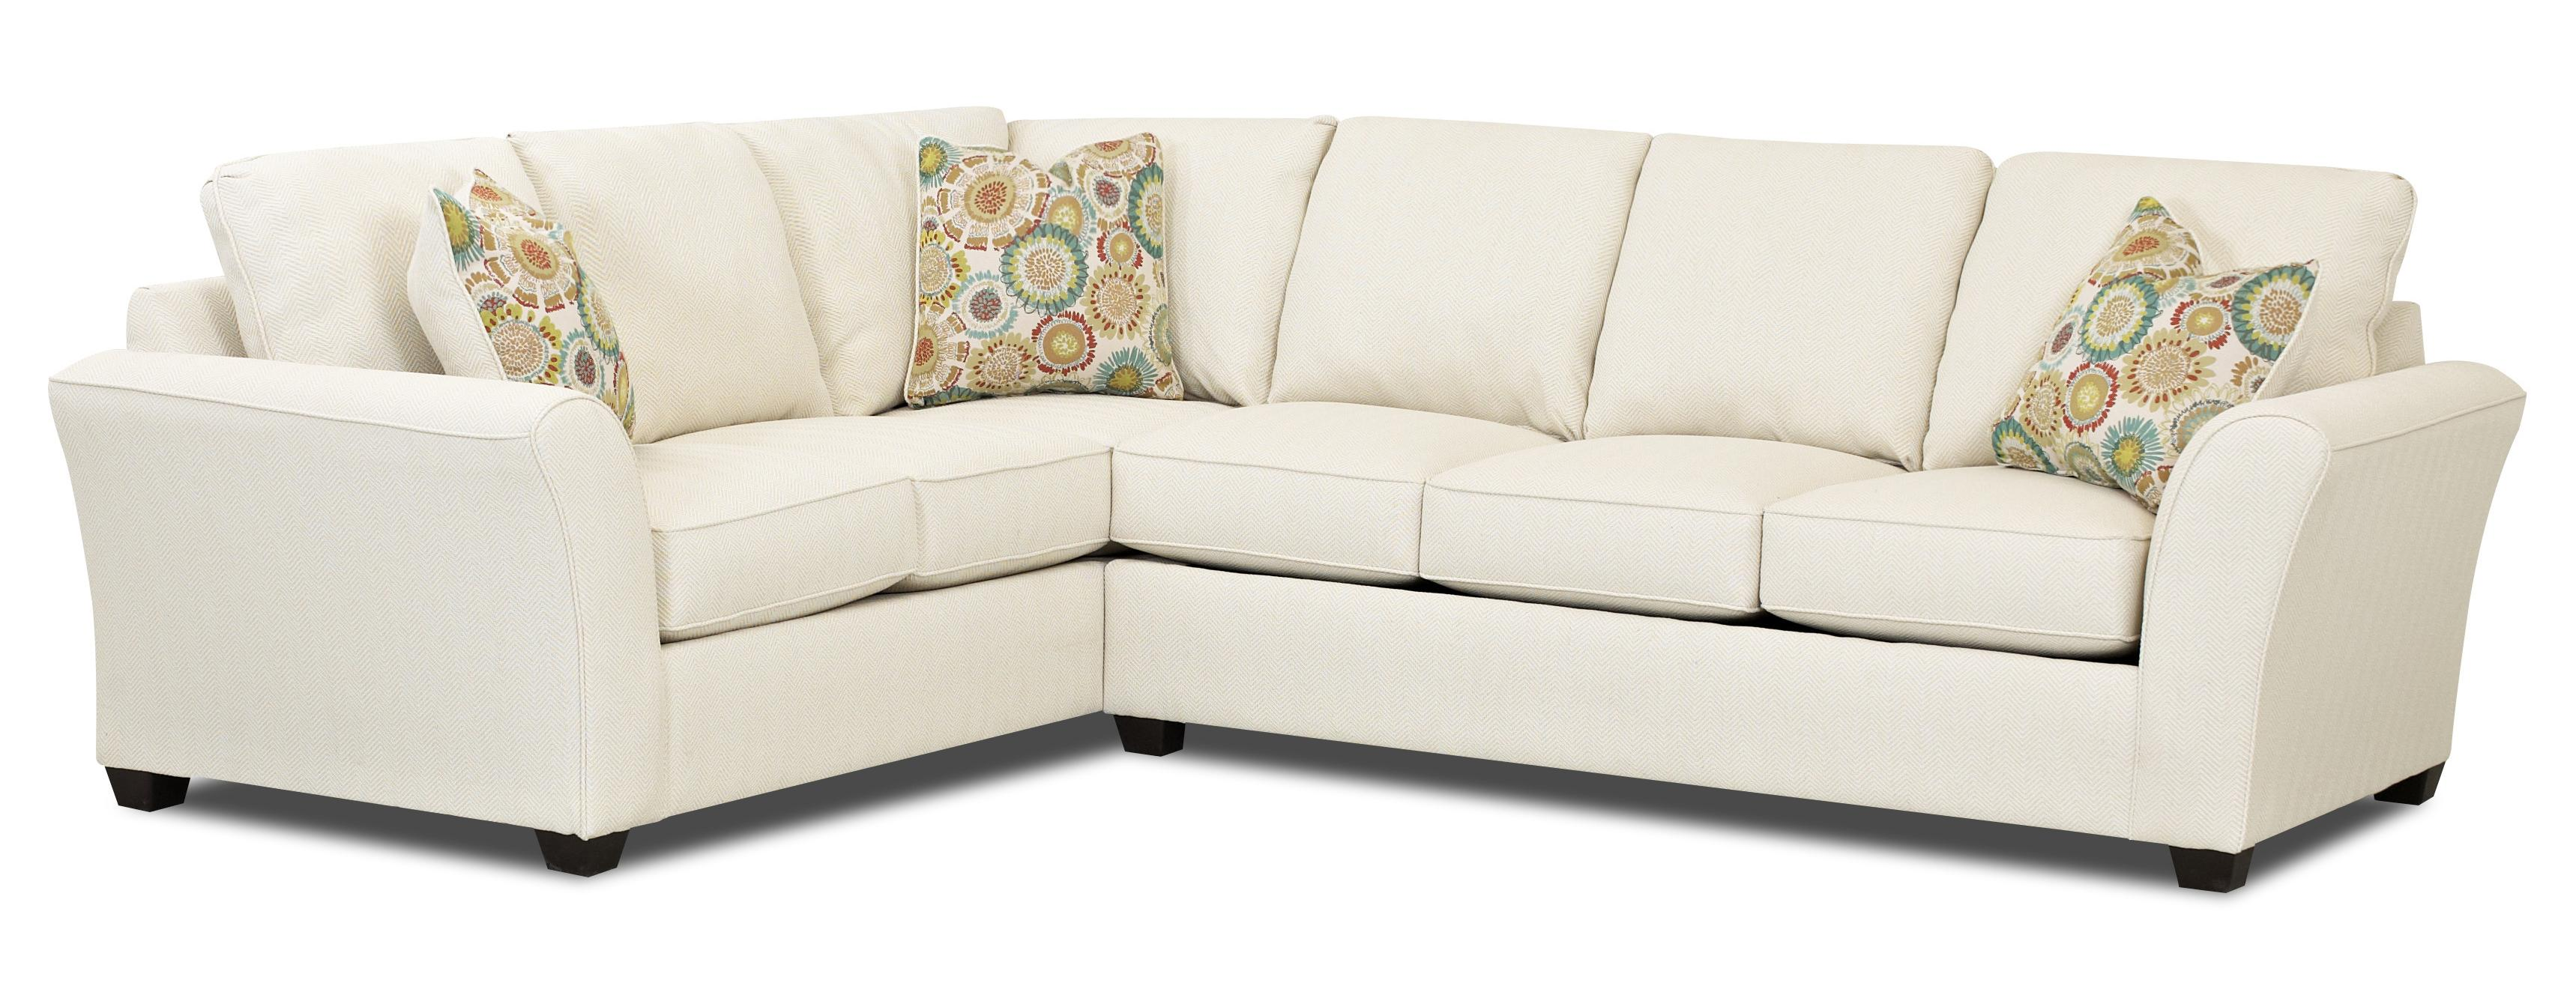 Transitional sectional sleeper sofa with dreamquest for Sectional sofas wolf furniture